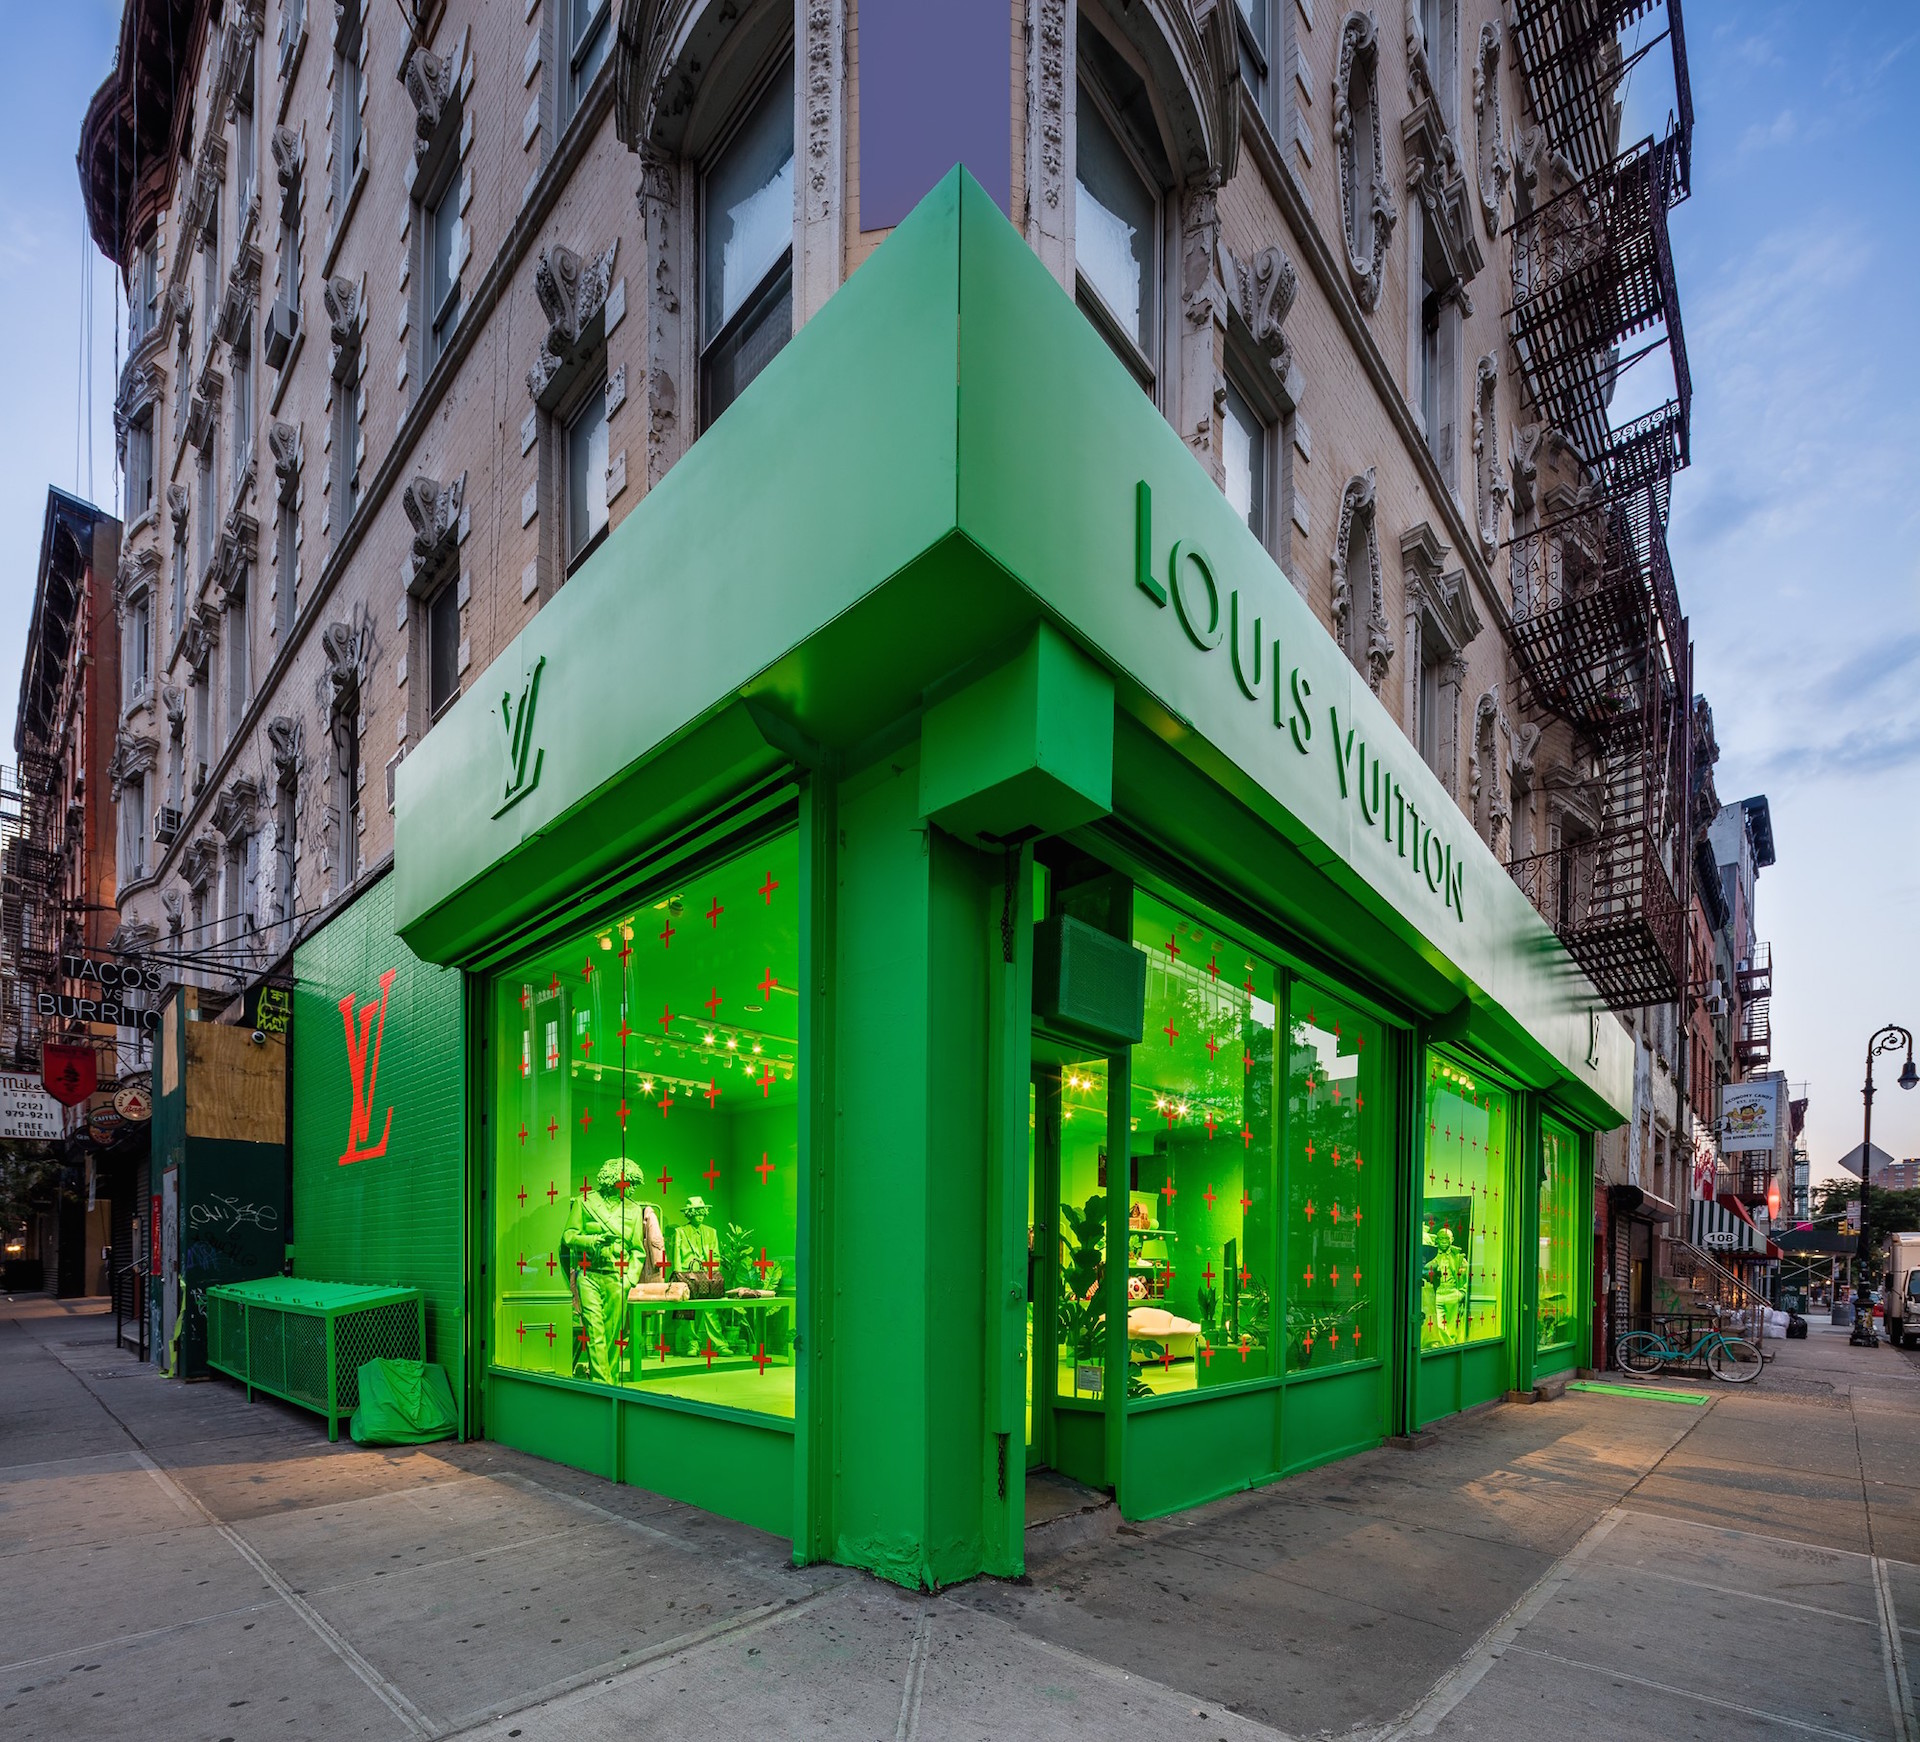 Ola verde: el nuevo pop up store de Louis Vuitton en NY